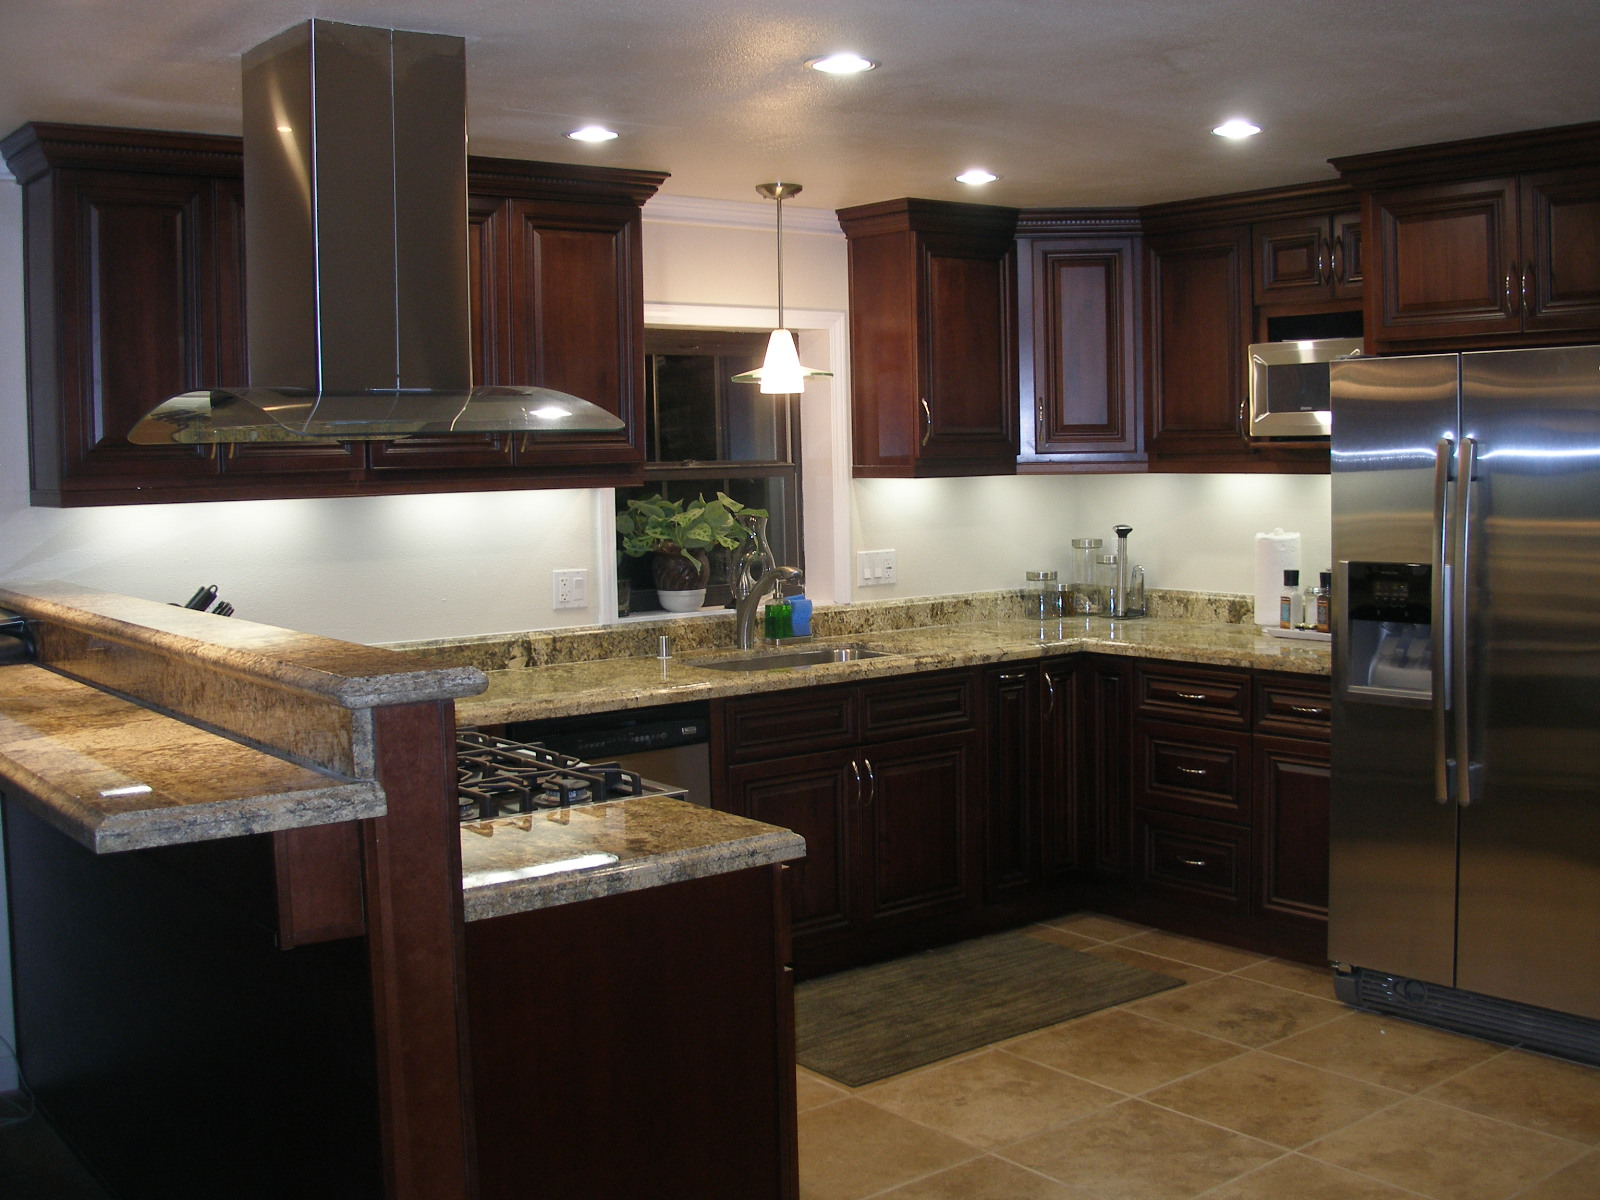 Image gallery kitchen redesign for Remodel my kitchen ideas